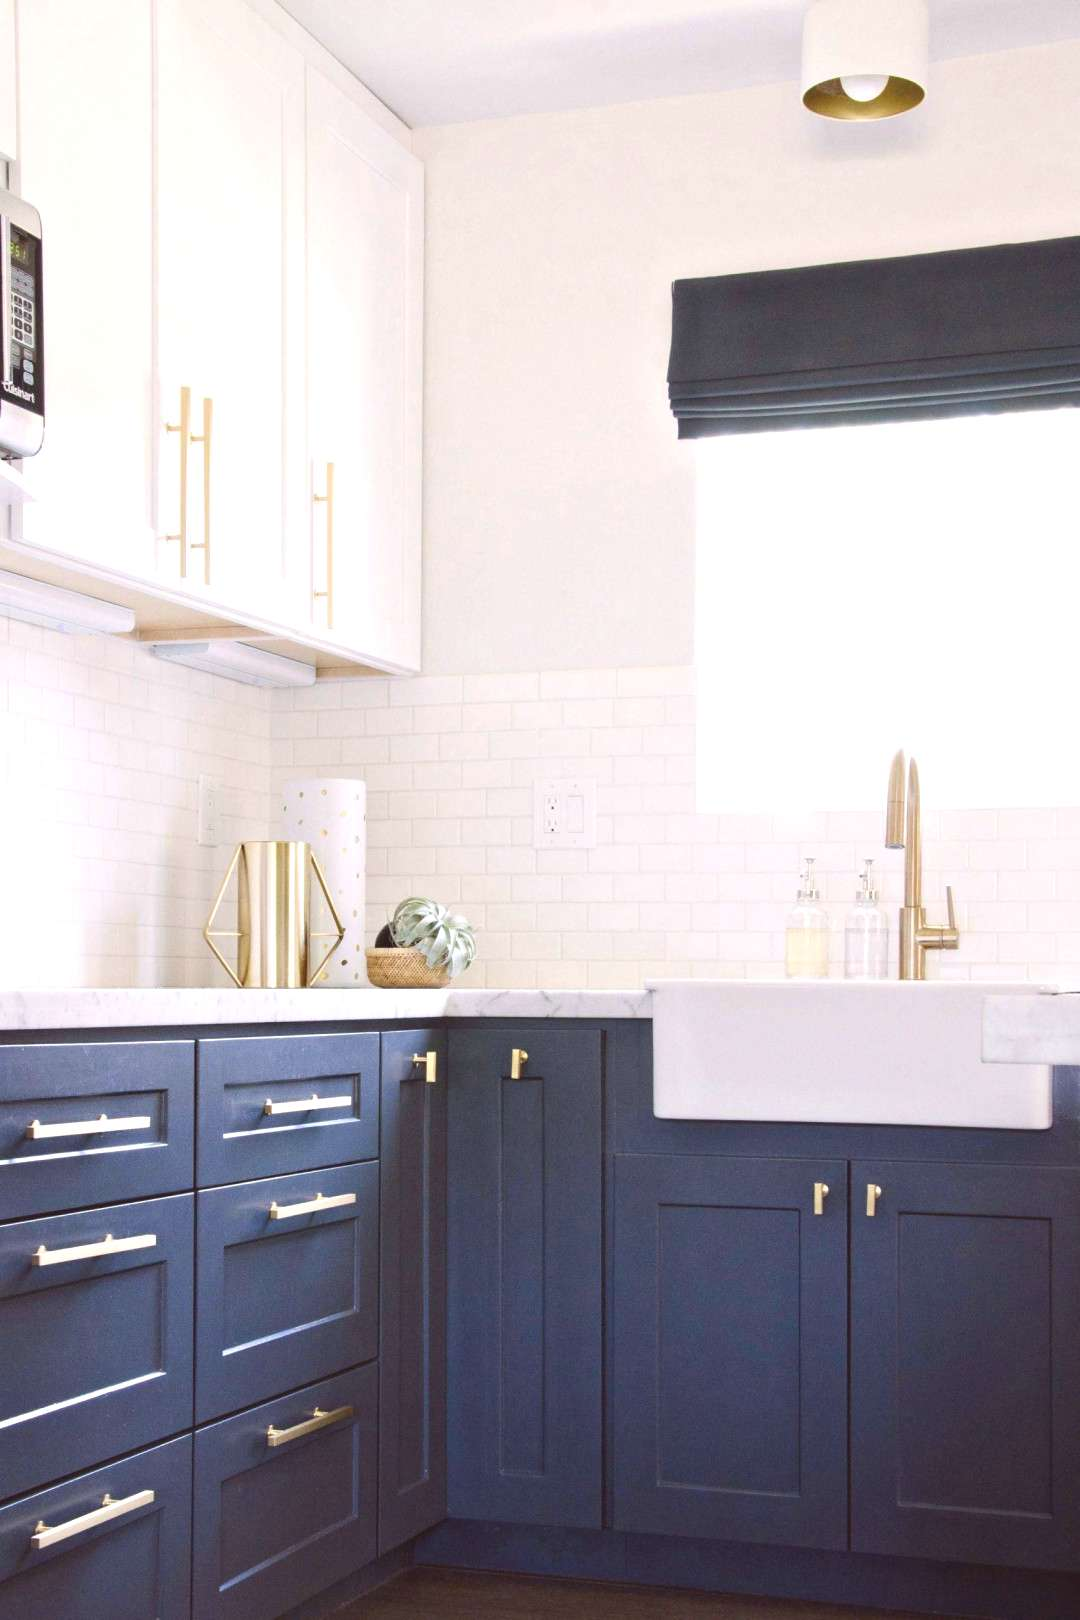 Kitchen Cabinets Remodeling 7 Trends Two Tone Kitchen Cabinets Ideas for 2018 Tw...#cabinets